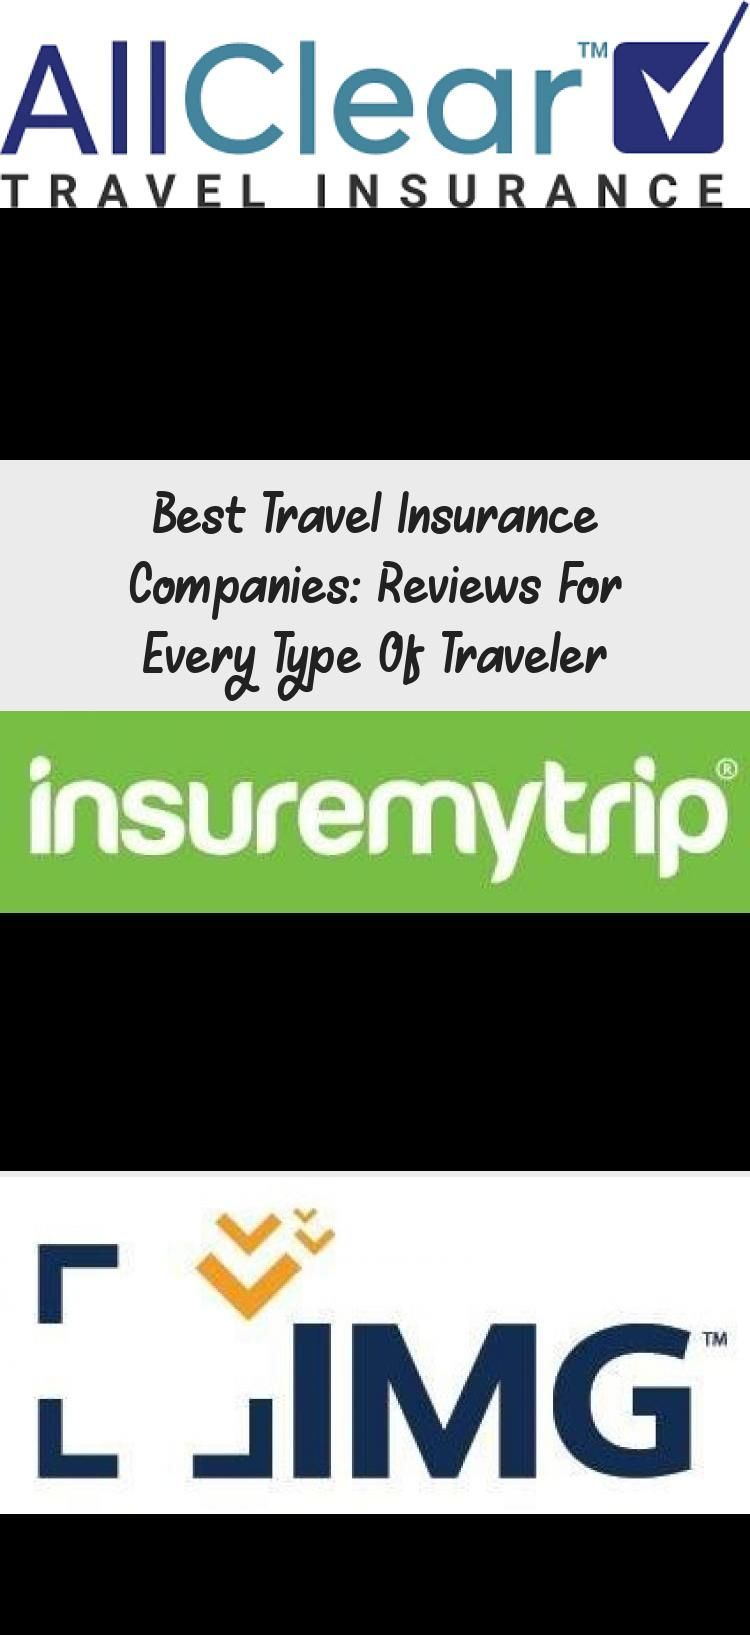 Searching for the best travel insurance companies? Compare